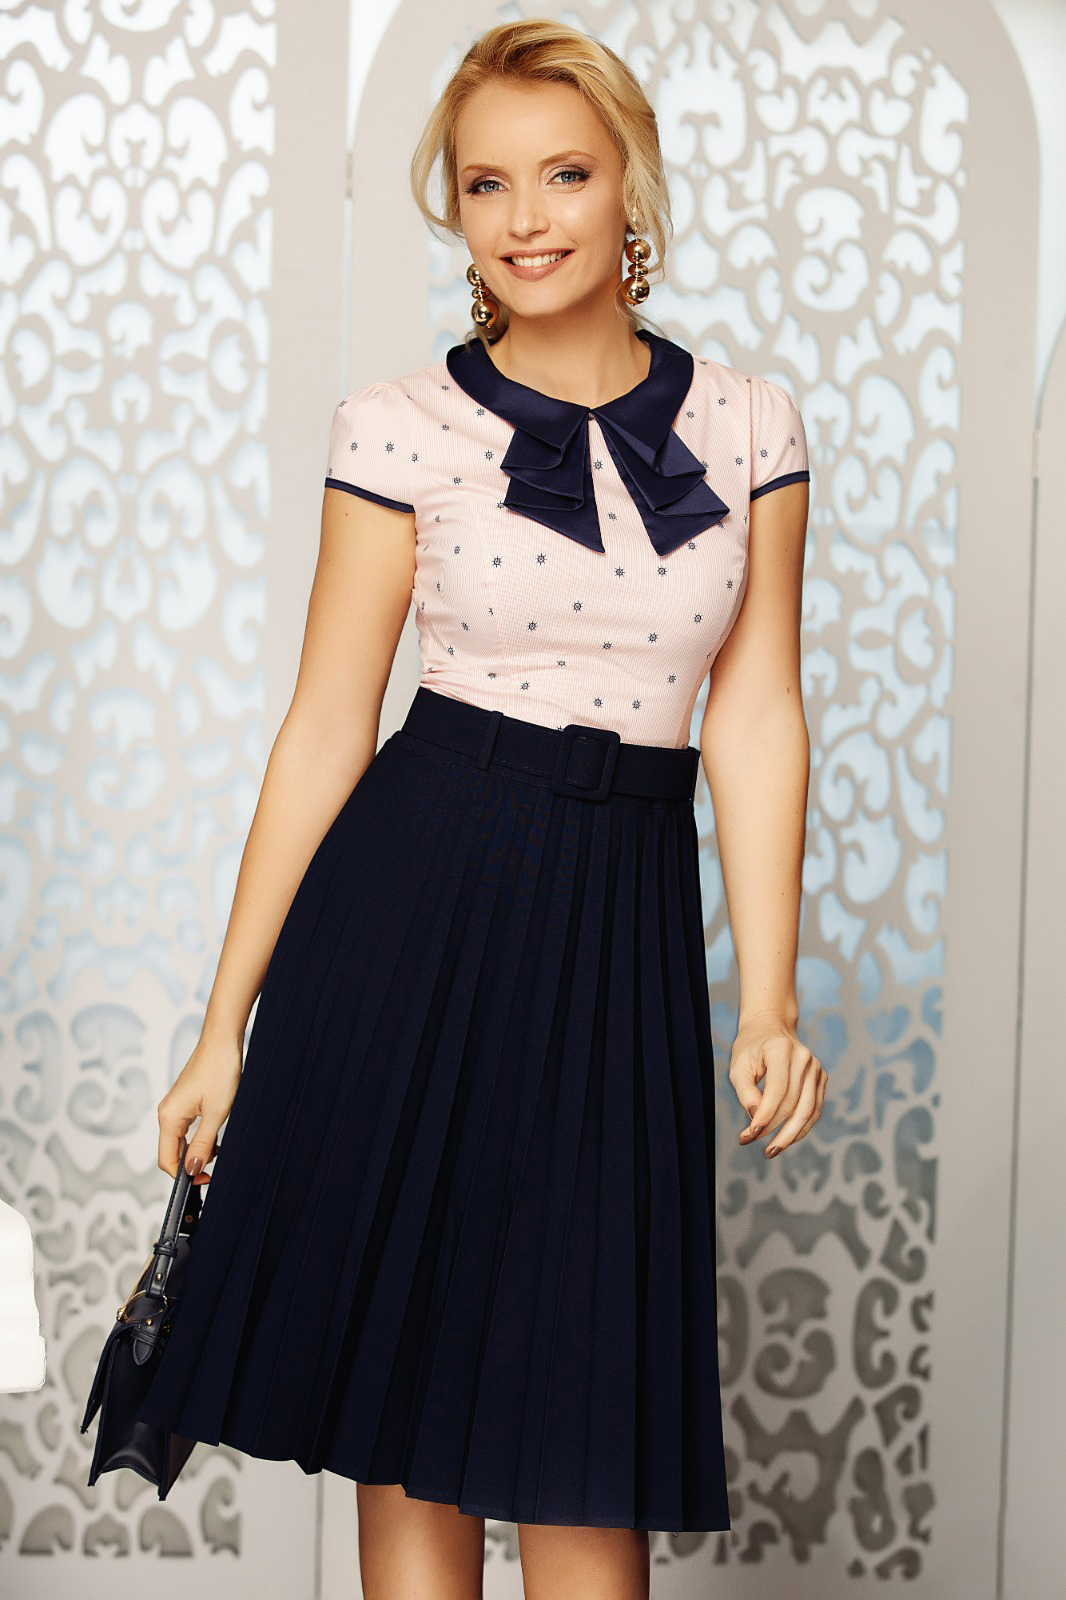 Fofy darkblue elegant folded up cloche skirt high waisted accessorized with belt slightly elastic fabric